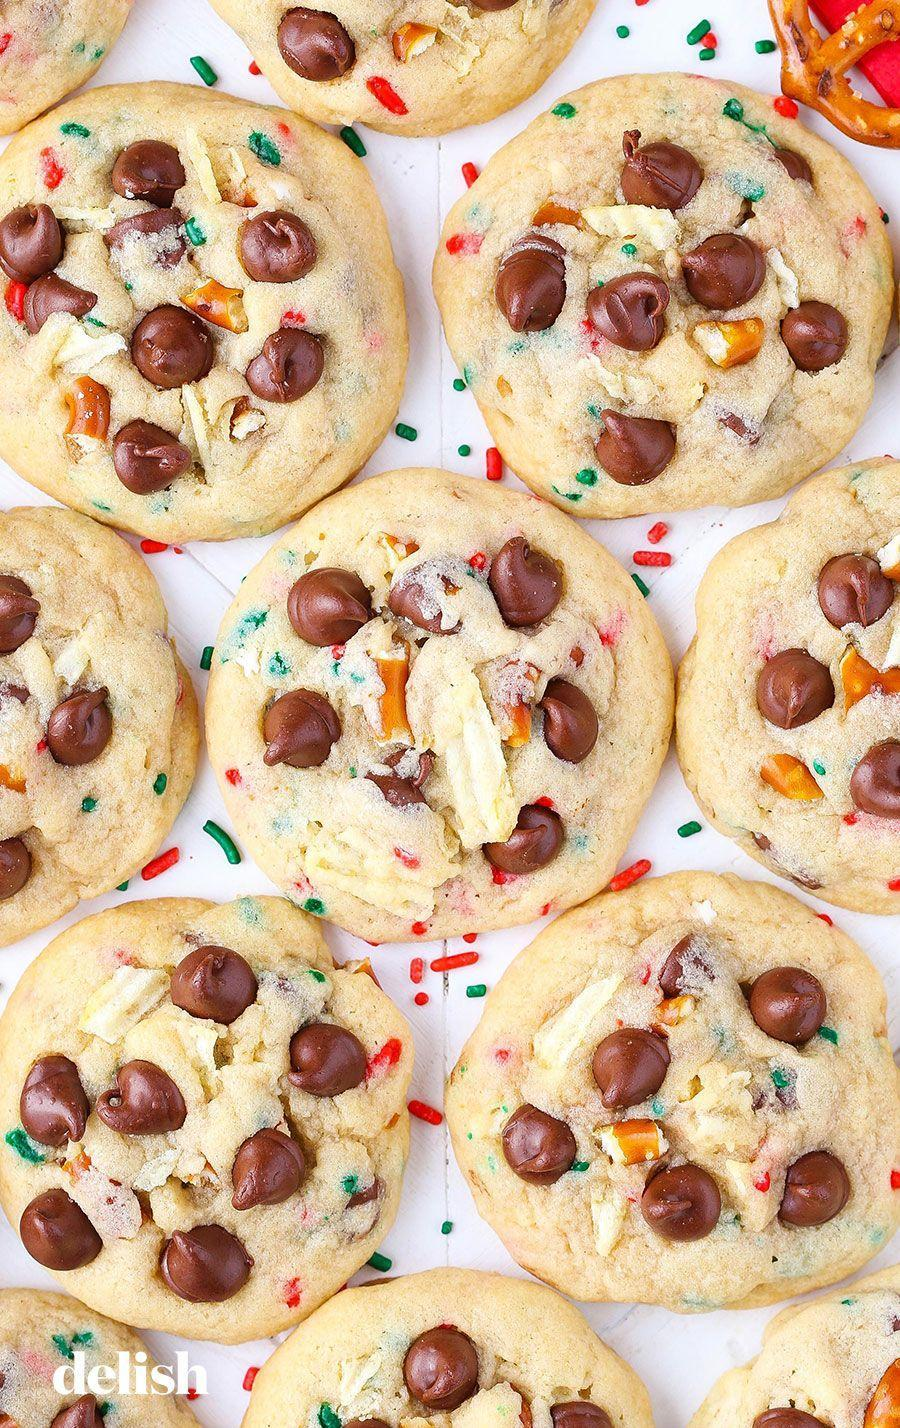 """<p>Don't let the name fool you—these cookies are a treasure.</p><p>Get the recipe from <a href=""""https://www.delish.com/cooking/recipes/a50432/santas-trash-cookies-recipe/"""" rel=""""nofollow noopener"""" target=""""_blank"""" data-ylk=""""slk:Delish"""" class=""""link rapid-noclick-resp"""">Delish</a>.</p>"""